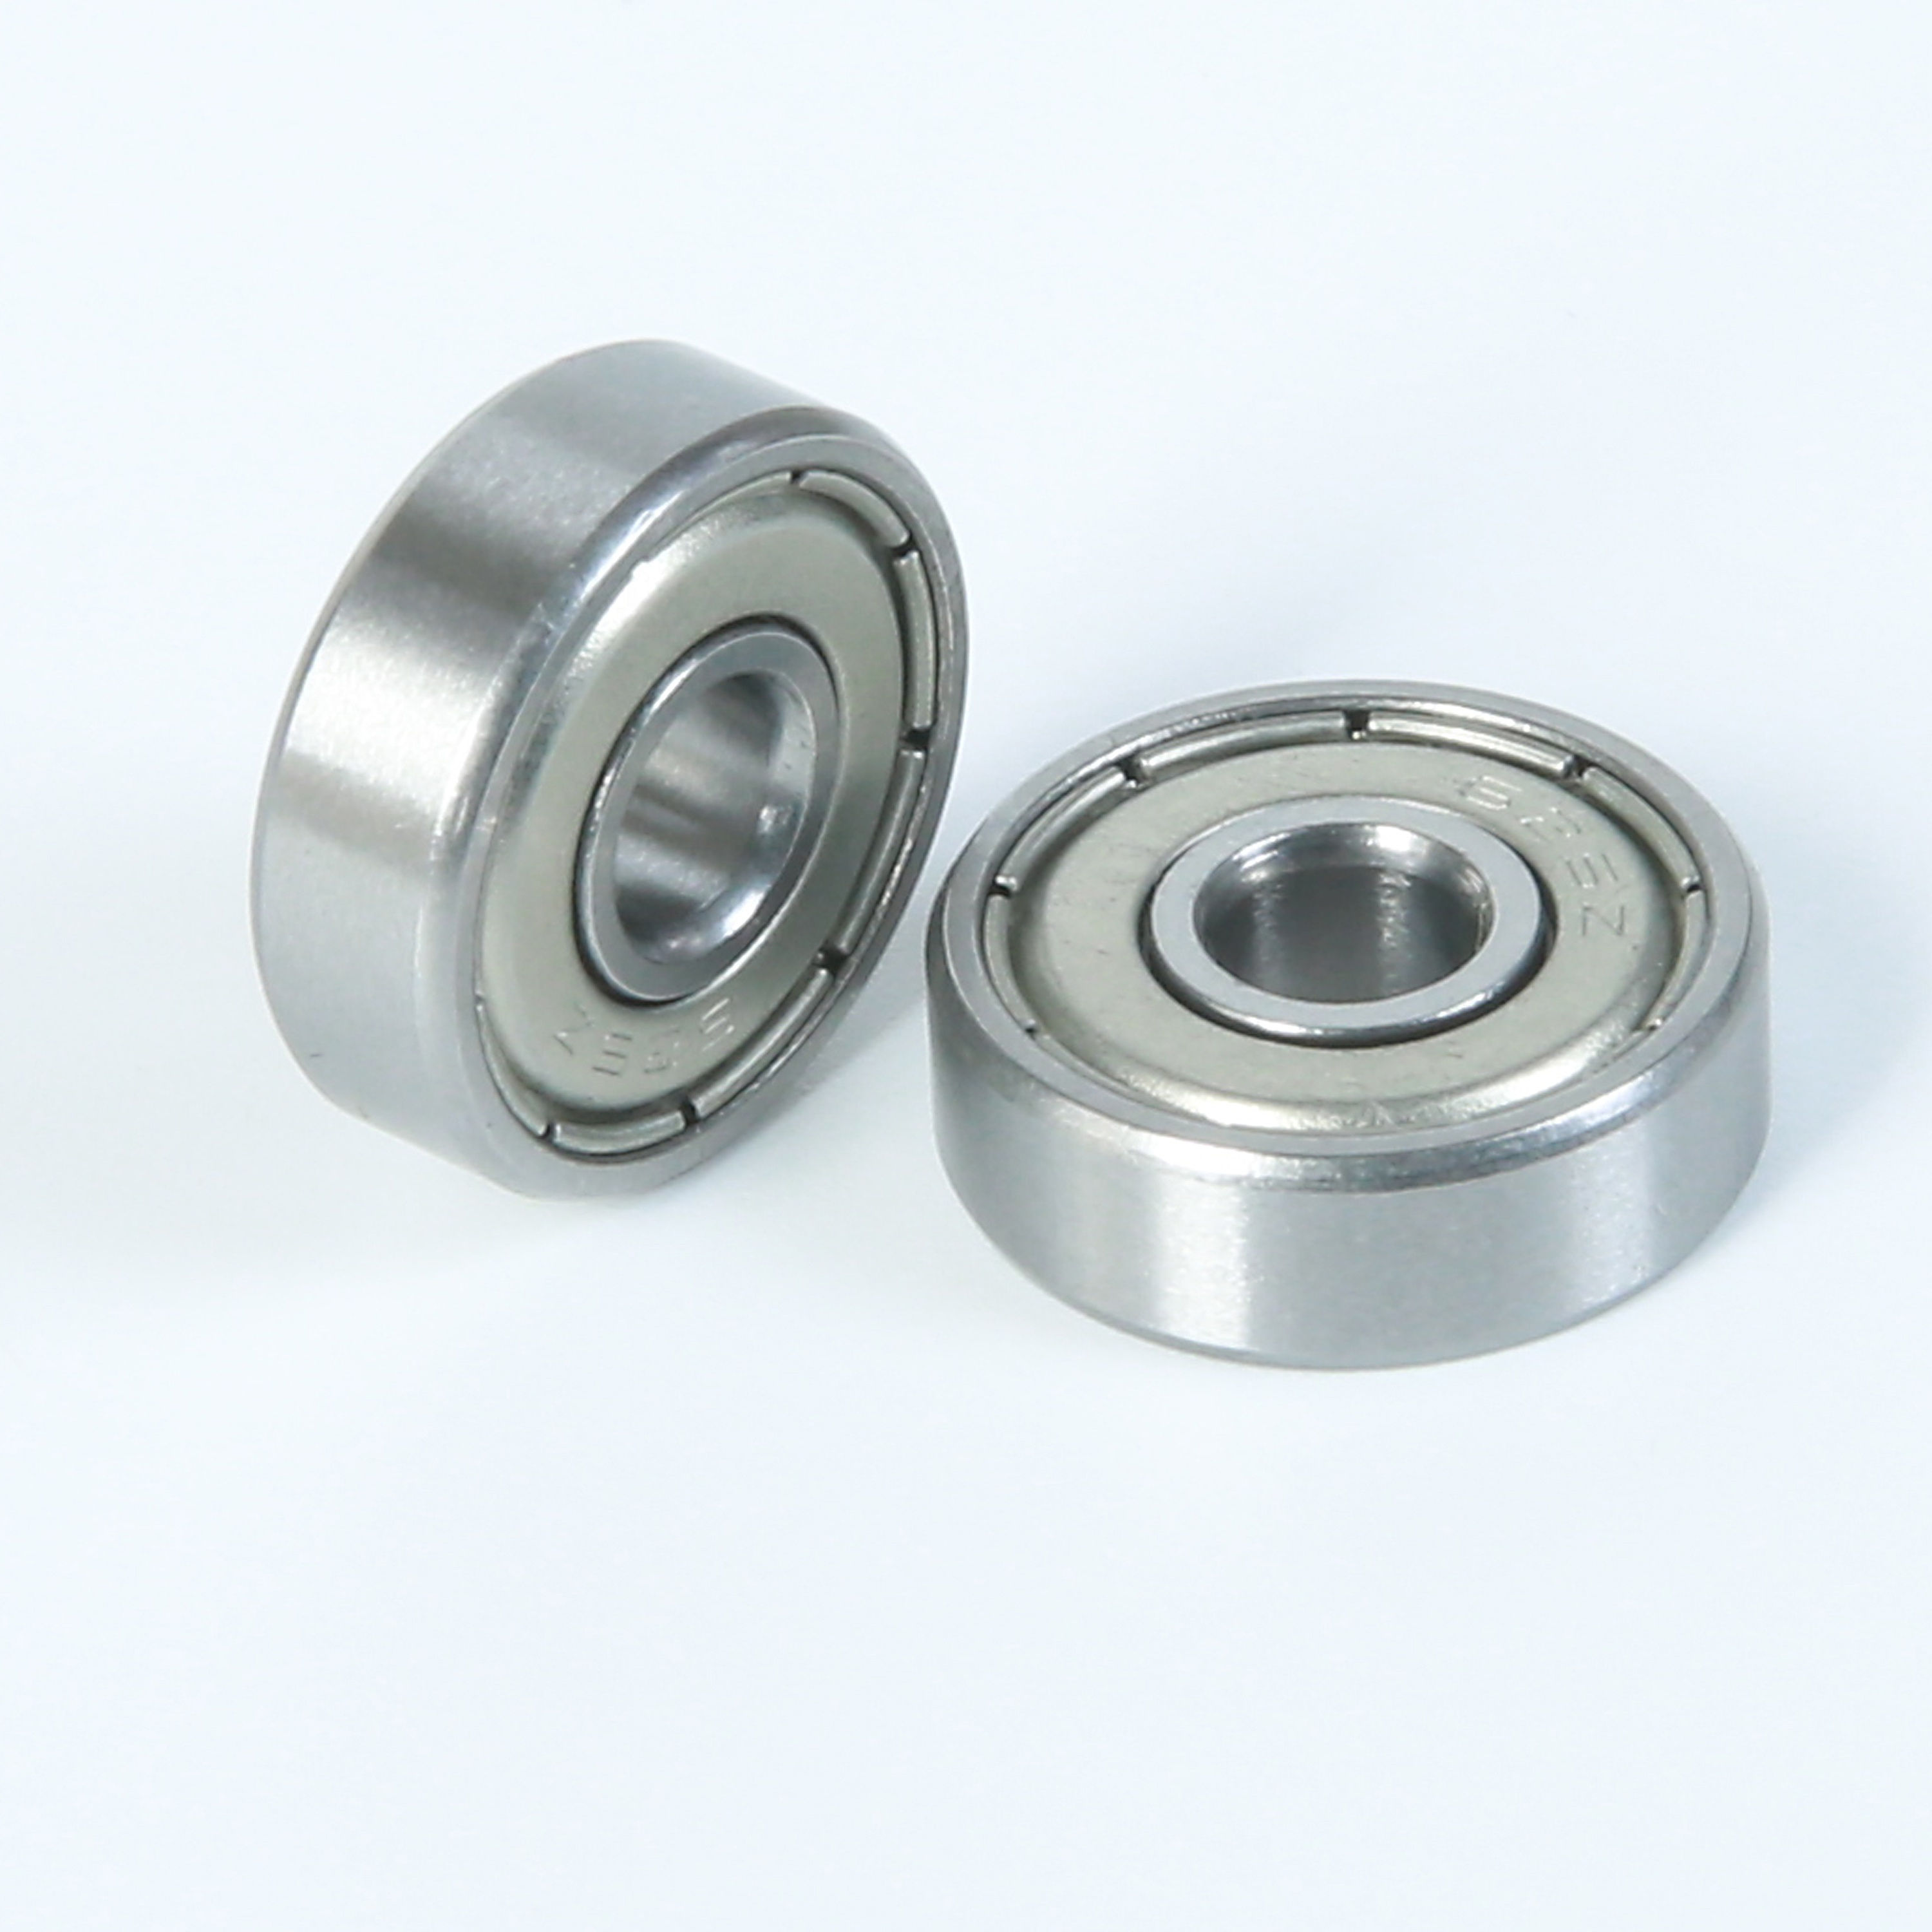 "Stainless Flanged Ball Bearings FR144zz 1//8/"" x 1//4/"" x 7//64/"" SFR144zz 10 PCS"